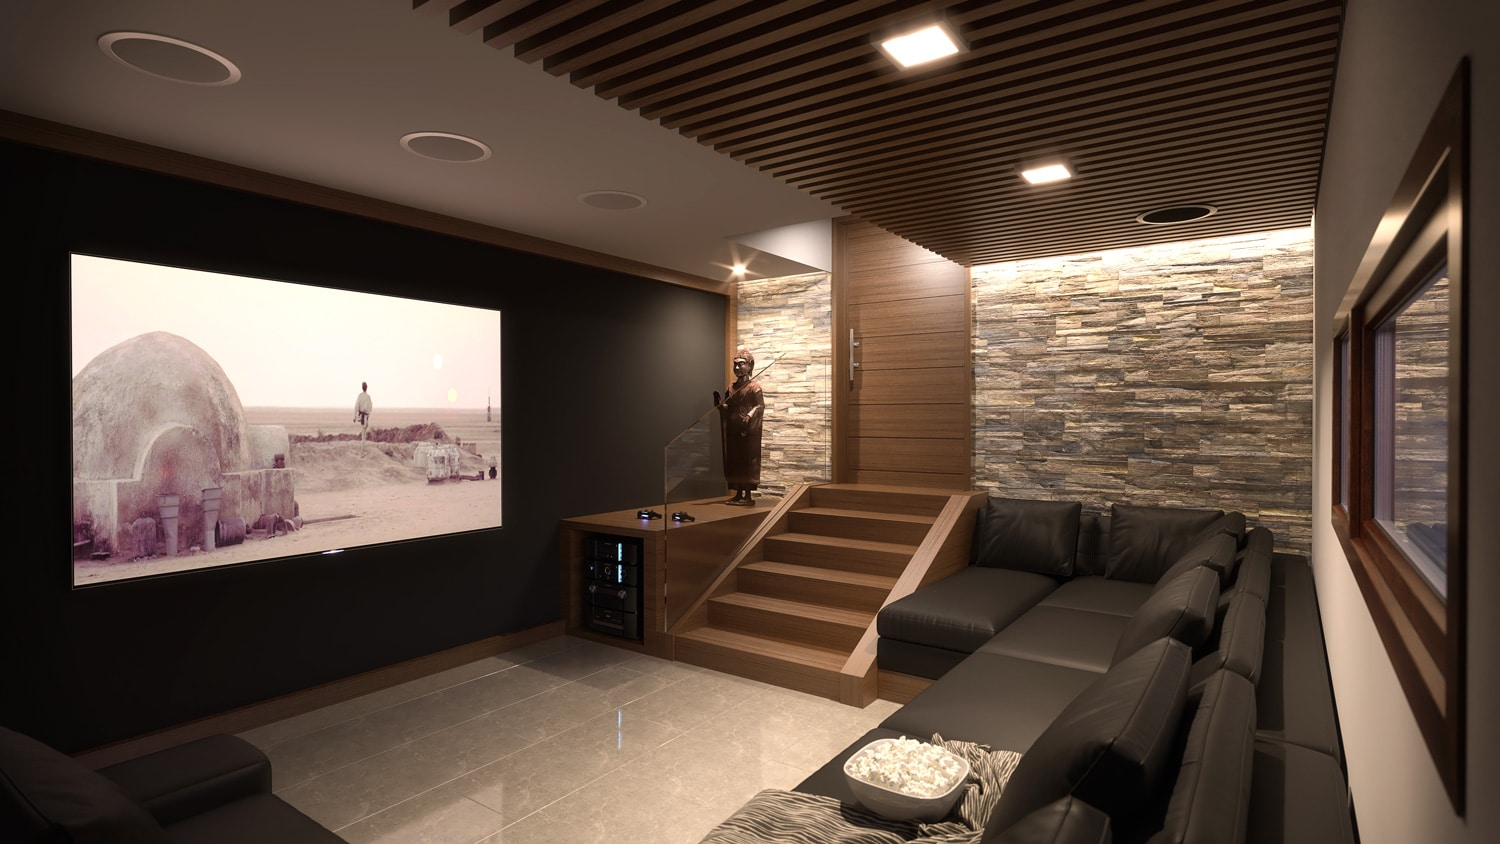 Theatre/Game Room